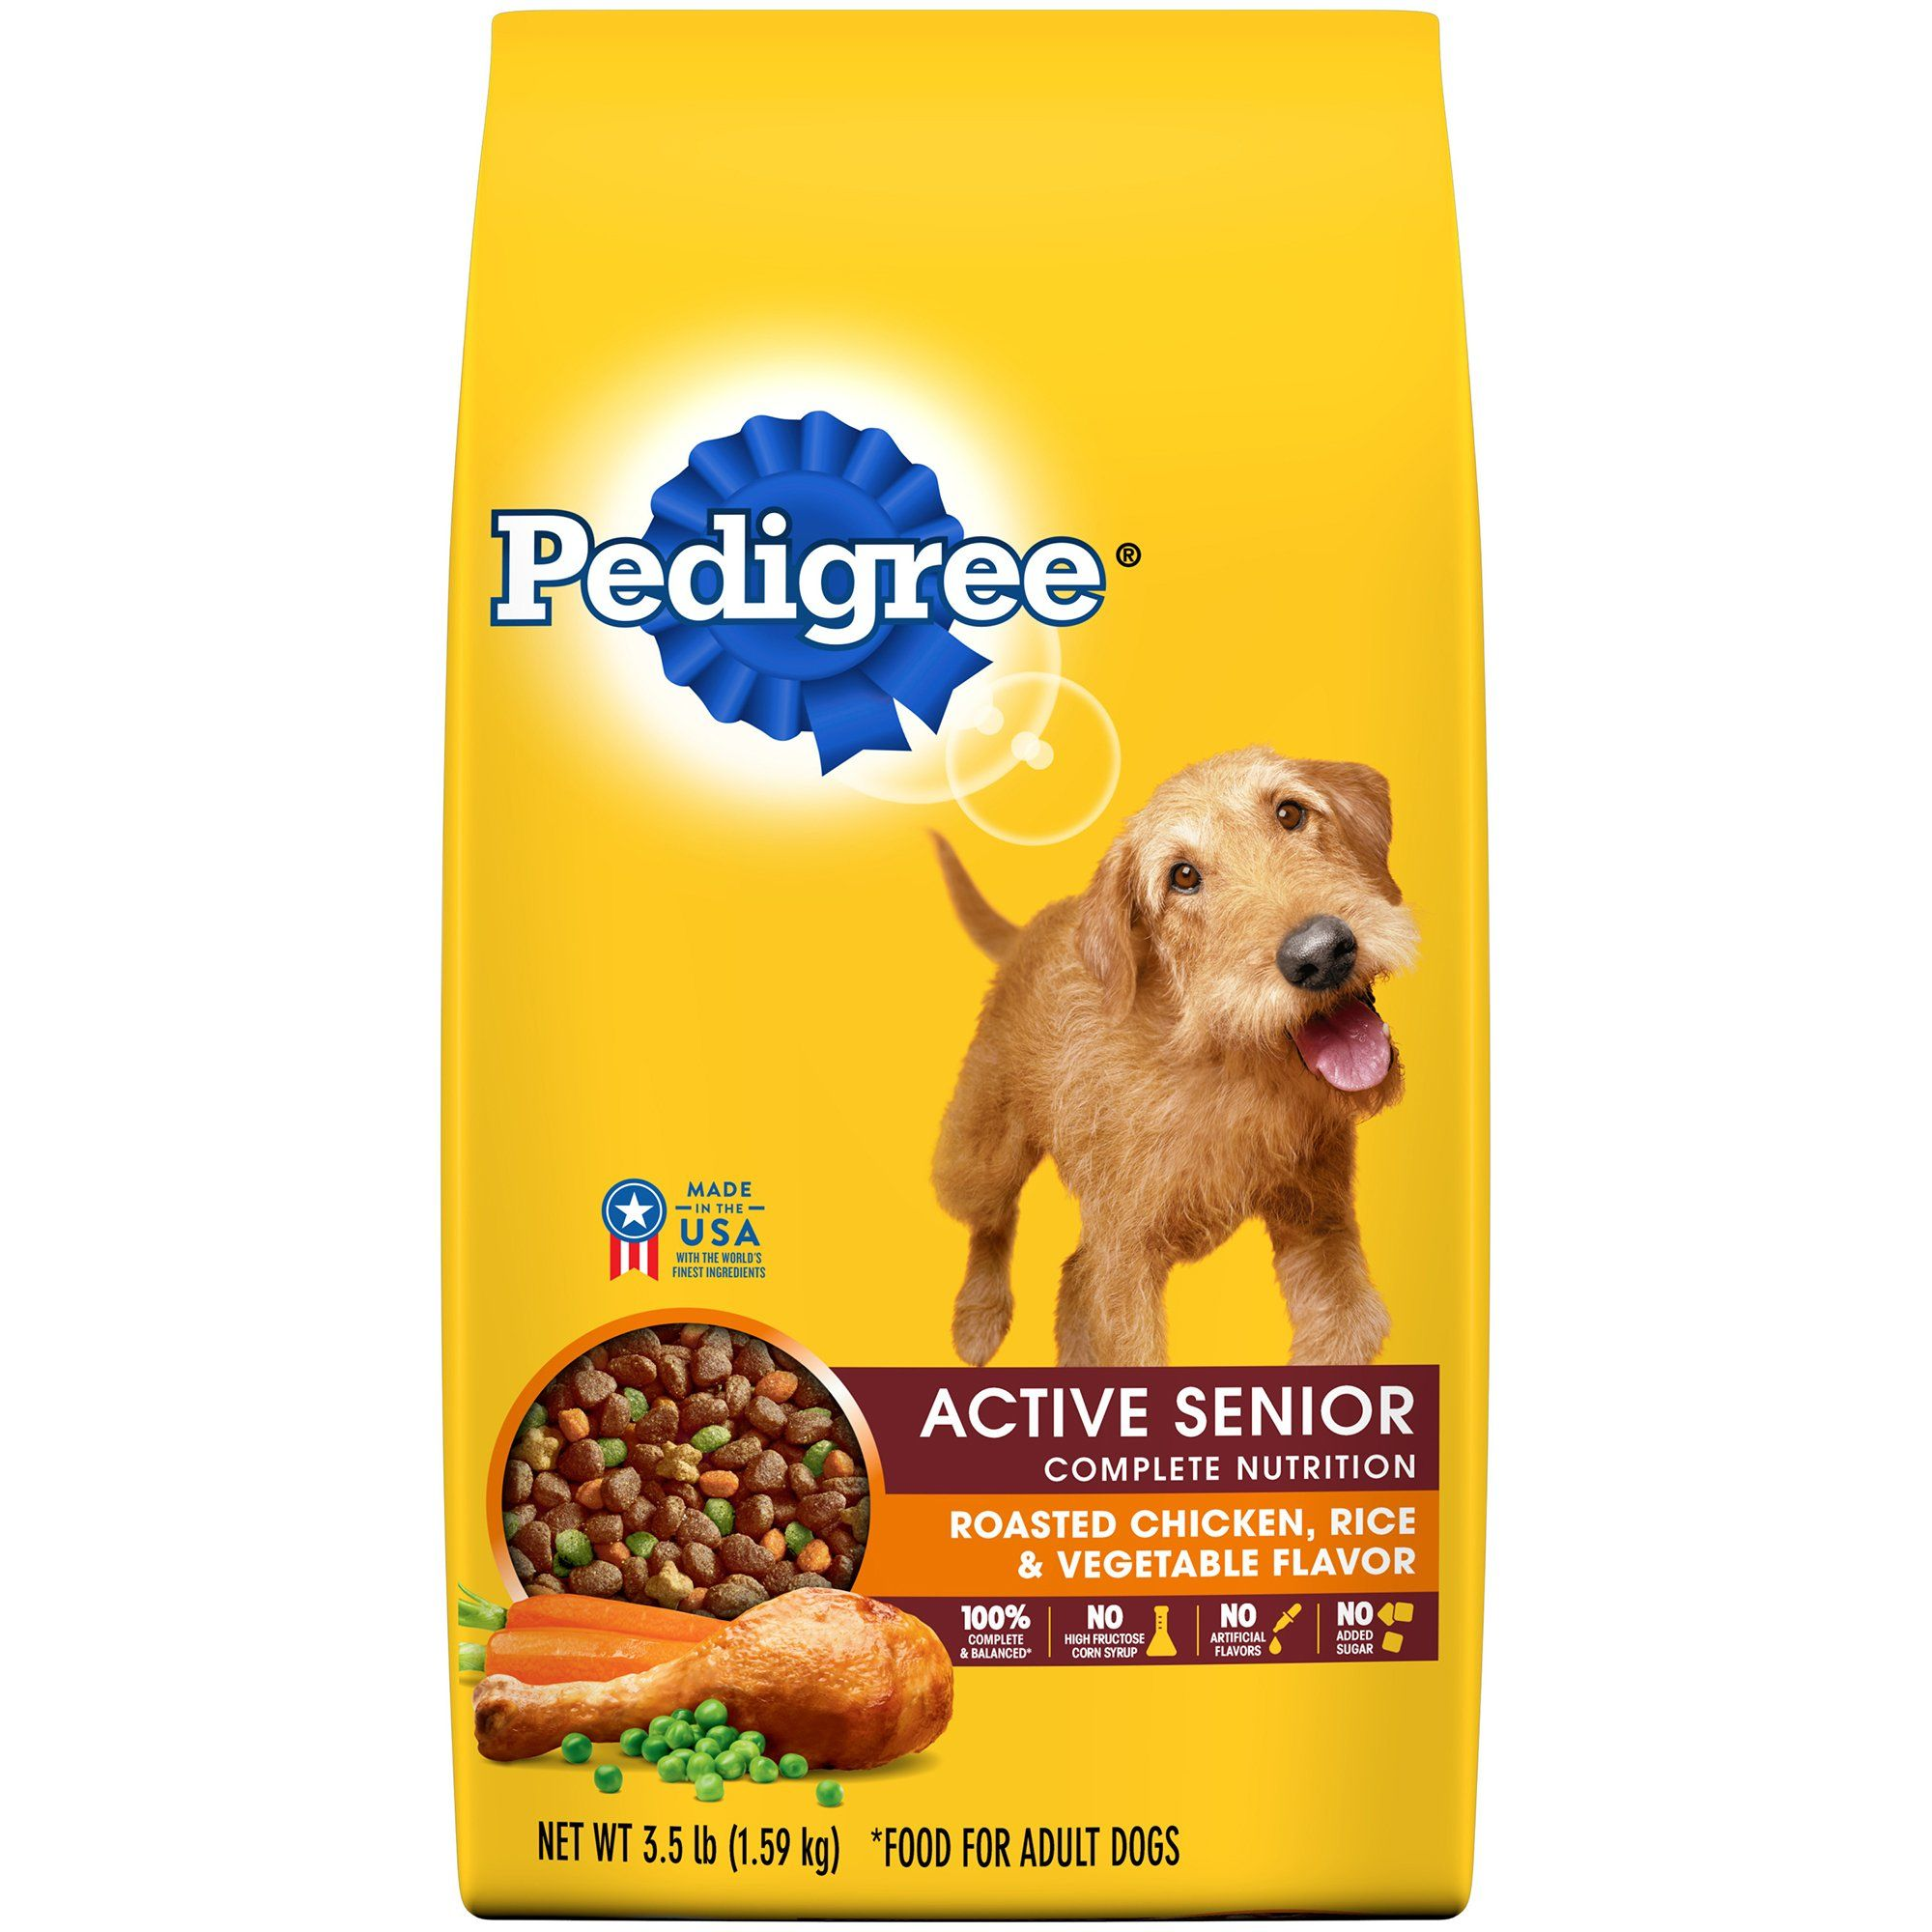 Pedigree Active Senior Roasted Chicken Rice And Vegetable Flavor